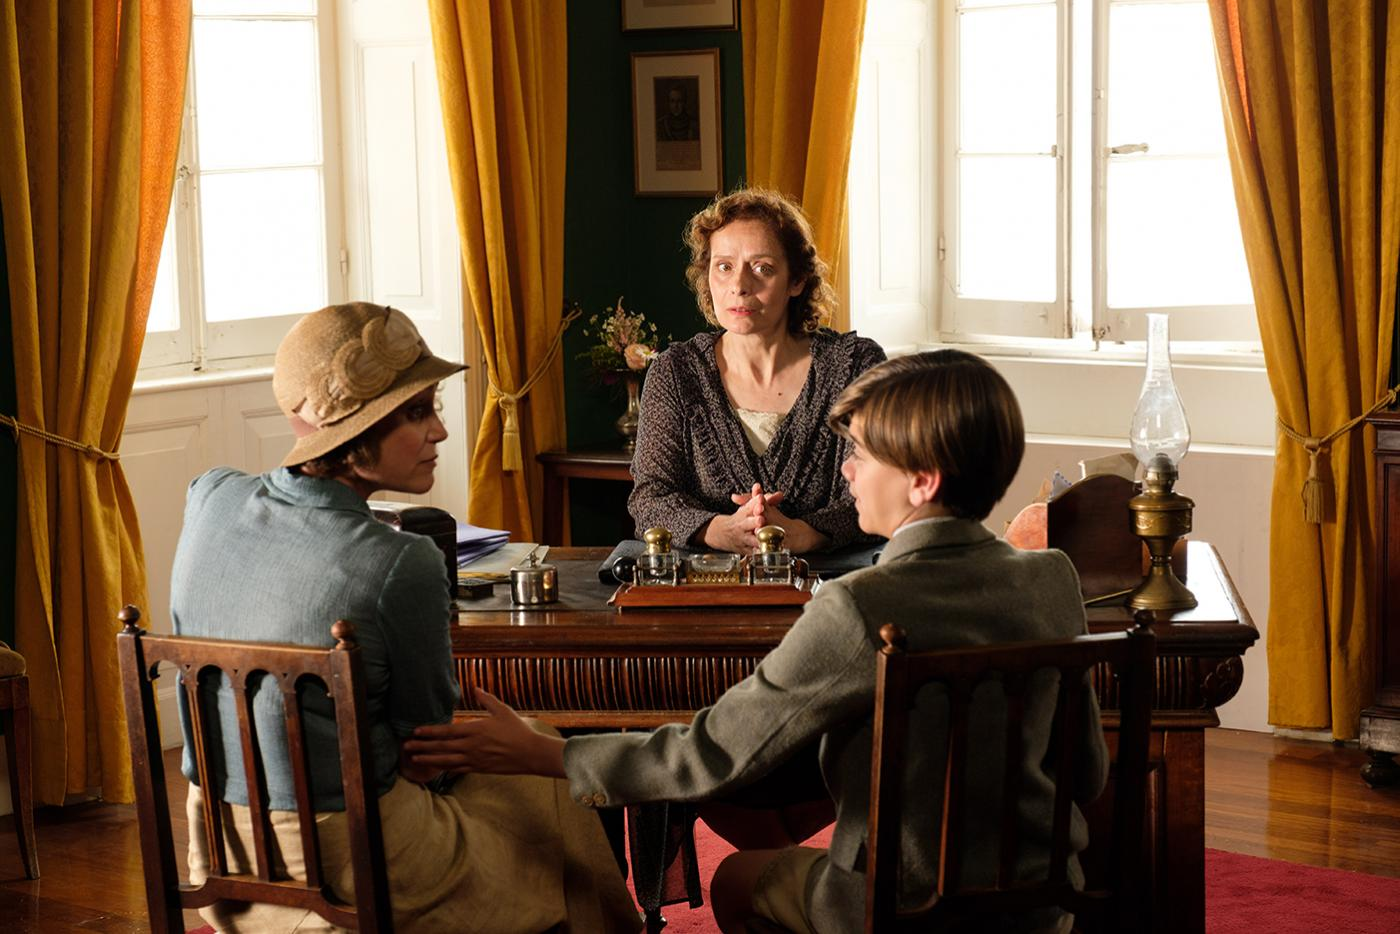 Louisa Durrell (KEELEY HAWES), Headmistress (NONI IOANNIDOU) & Gerald Durrell (MILO PARKER) in the Durrells in Corfu. Photo: Joss Barratt for Sid Gentle Films & MASTERPIECE